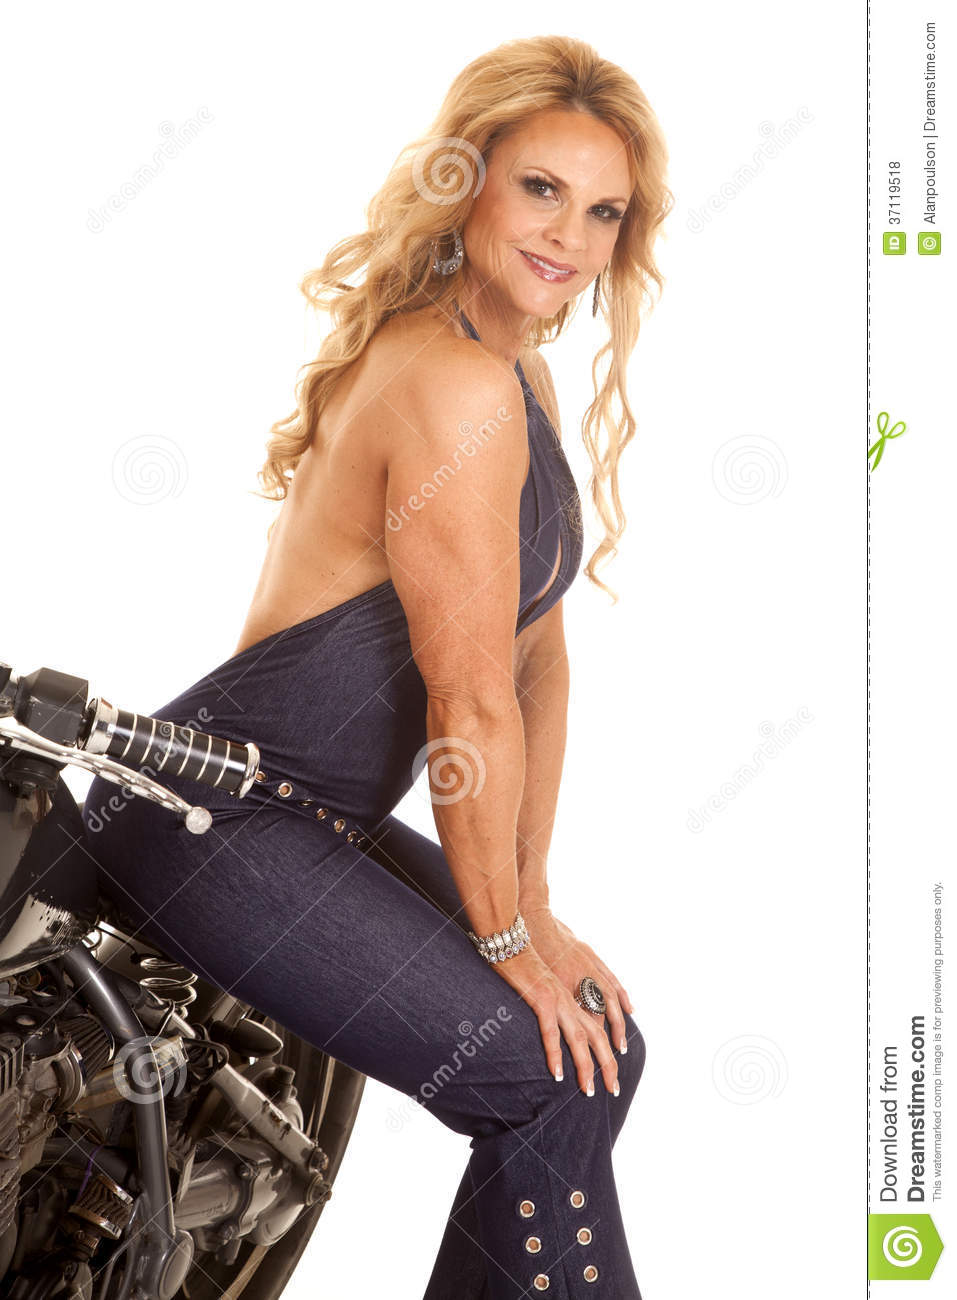 Mature Motorcycle Pictures 101